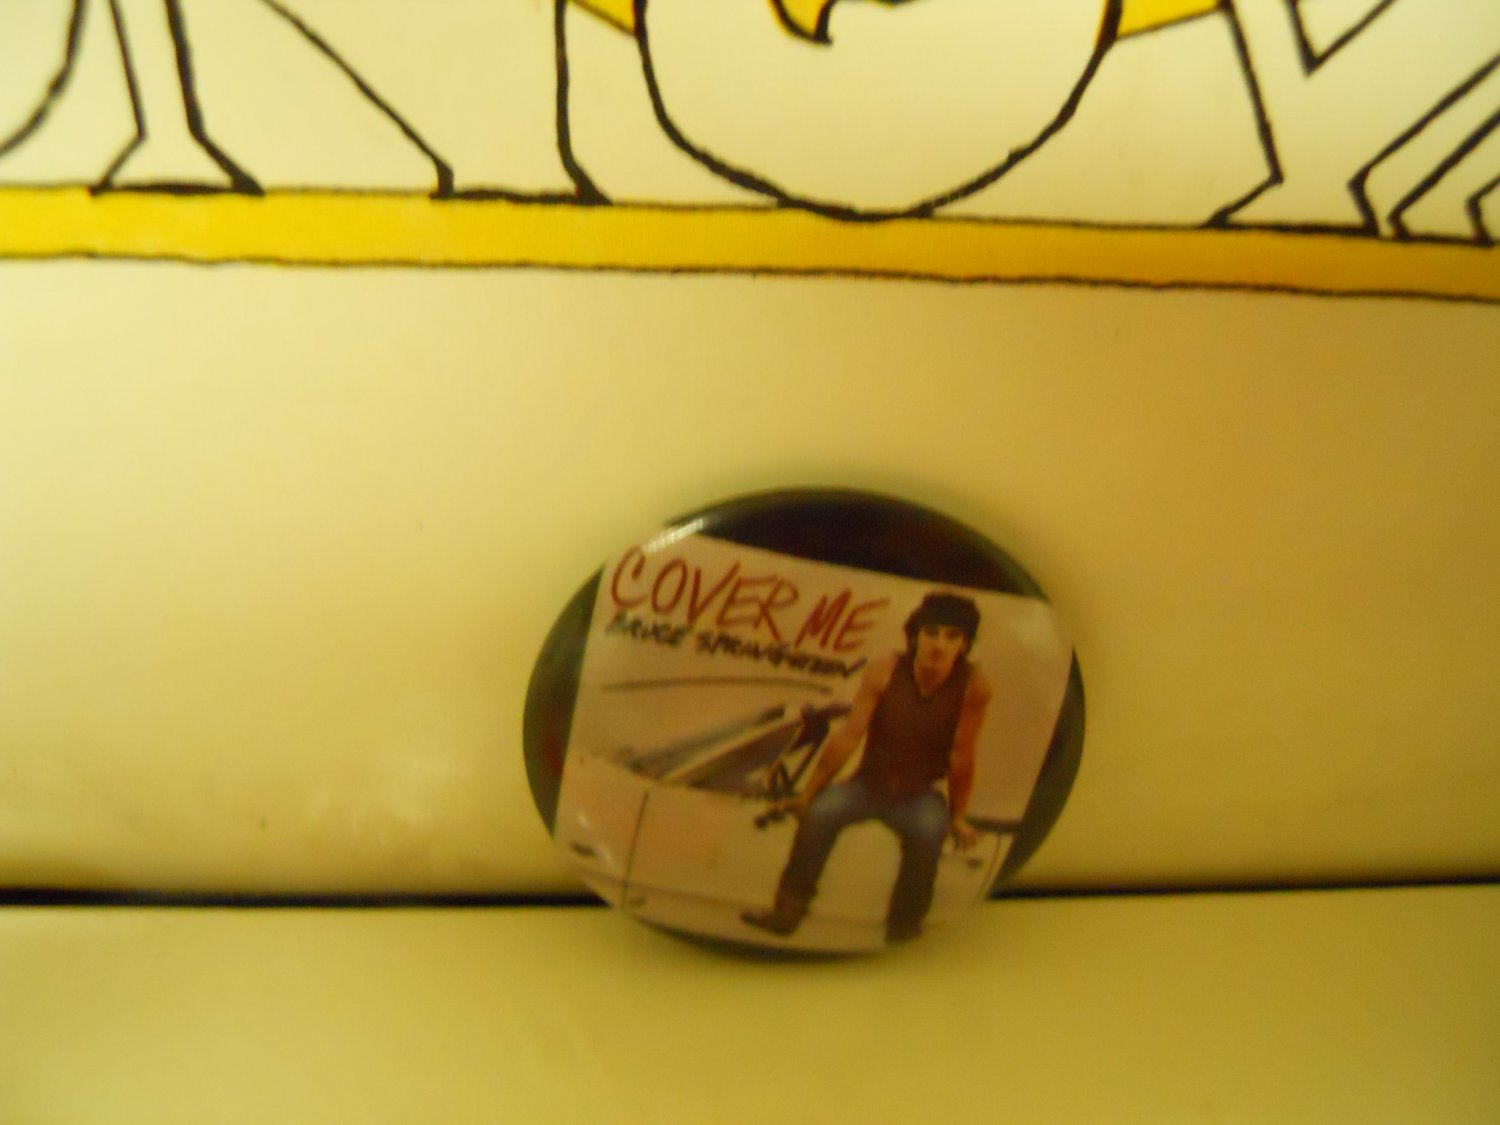 Bruce Springsteen Cover Me New op '84 CBS Promo Pinback